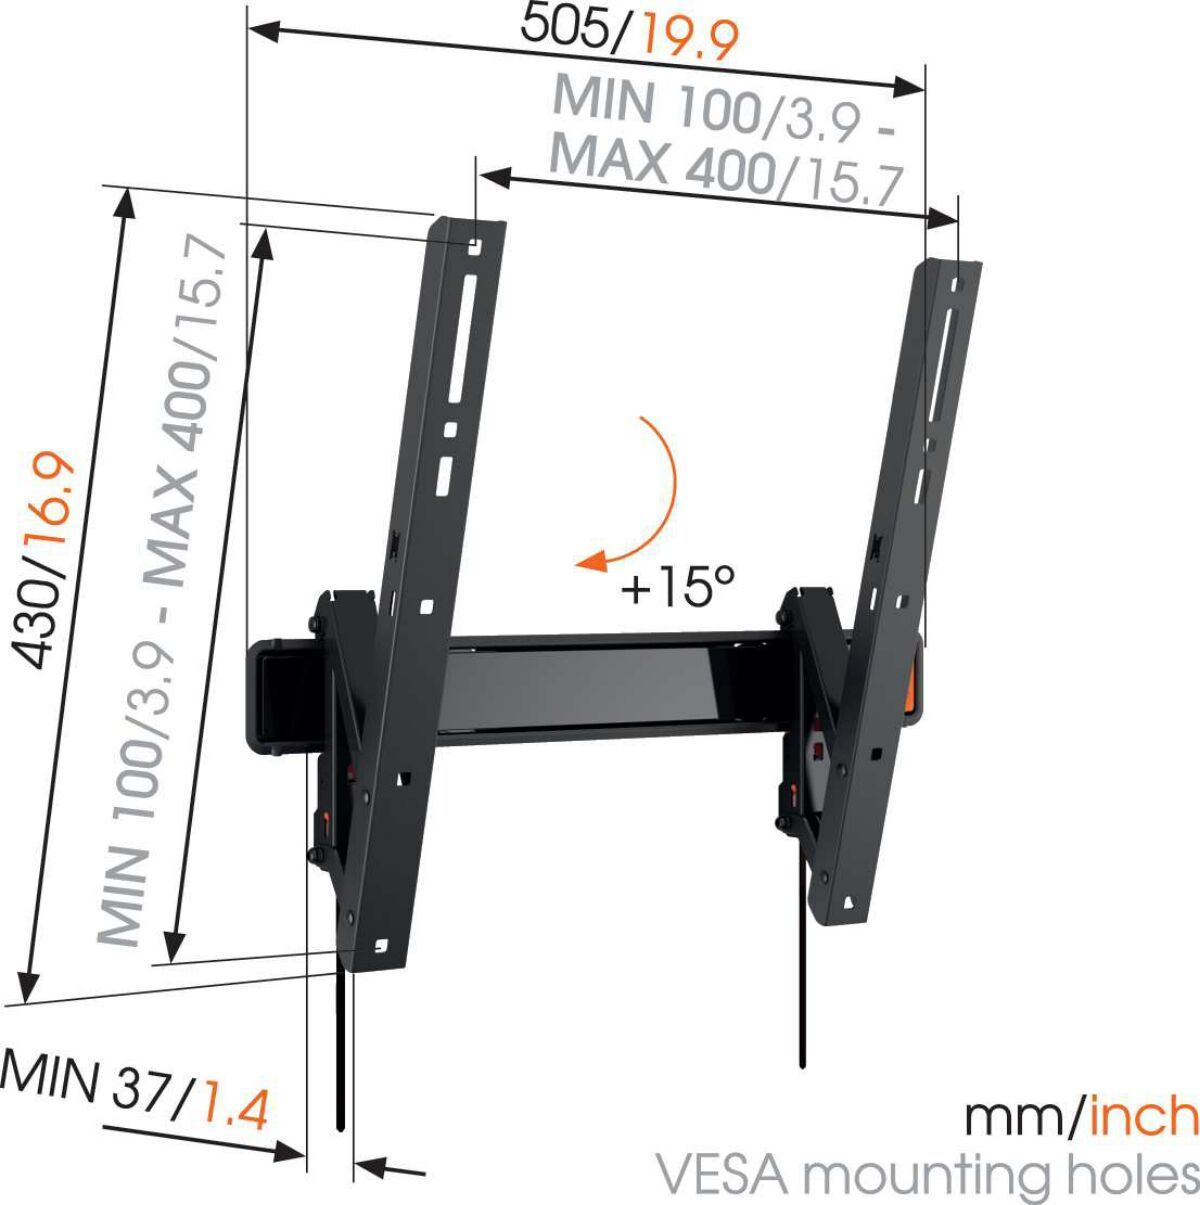 Vogel's WALL 3215 Soporte TV Inclinable - Adecuado para televisores de 32 a 55 pulgadas hasta 30 kg - Abatible hasta 15° - Dimensions